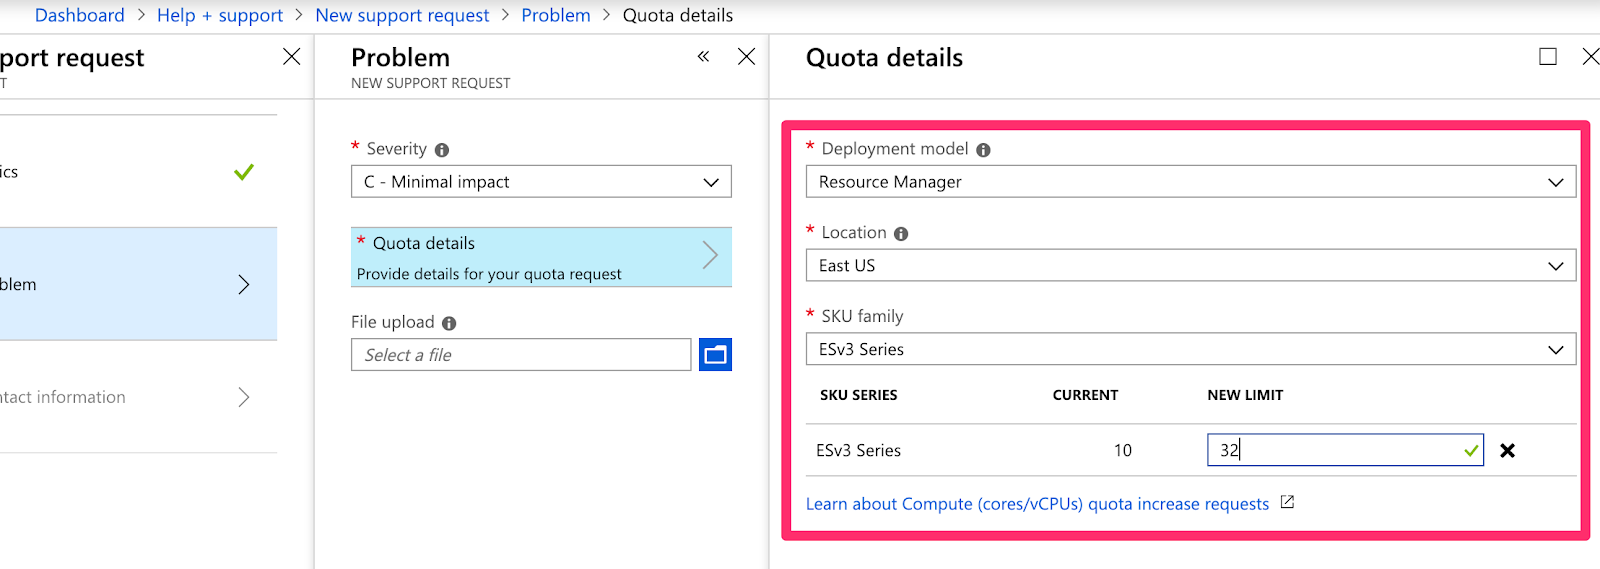 Deploy S/4HANA 1809 to Microsoft Azure in two hours